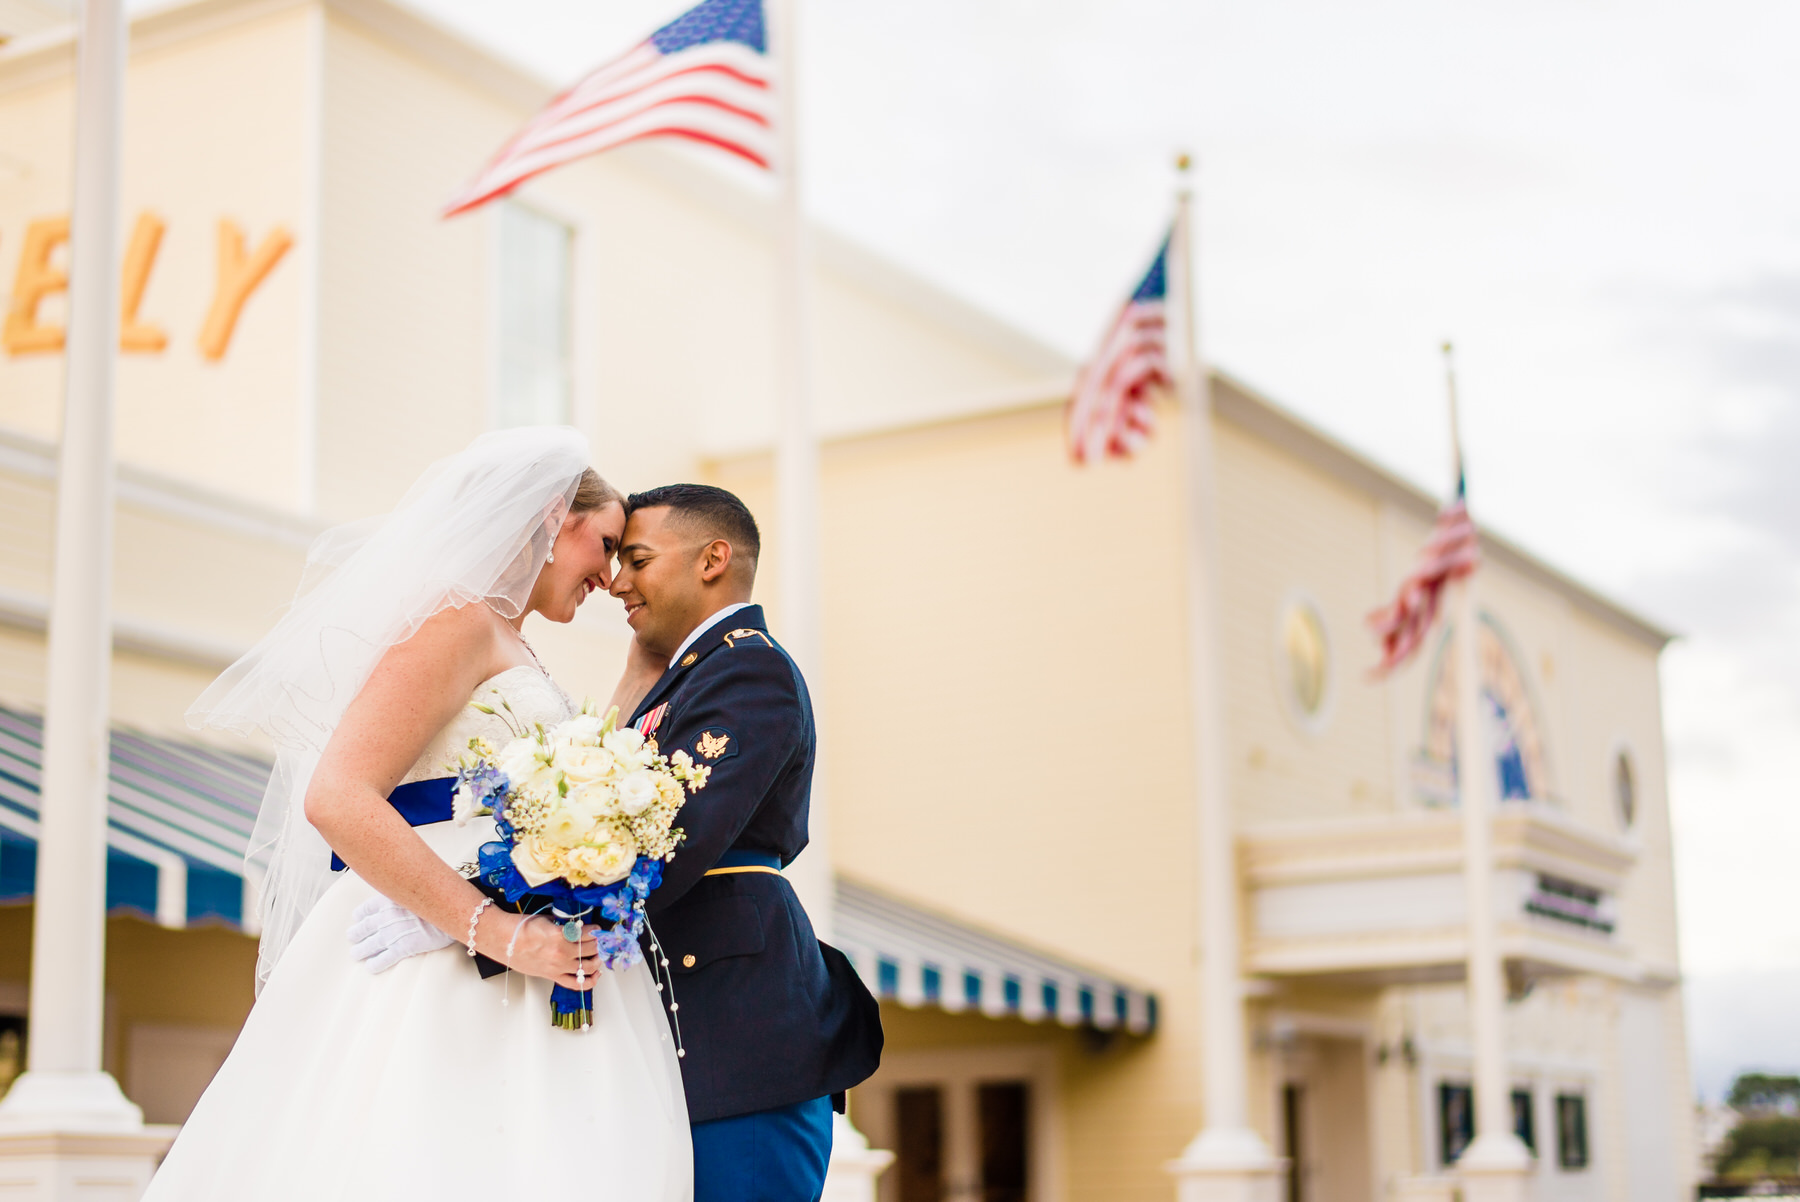 The newlyweds at Disney BoardWalk Inn by Washington DC Wedding Photographer Adam Mason